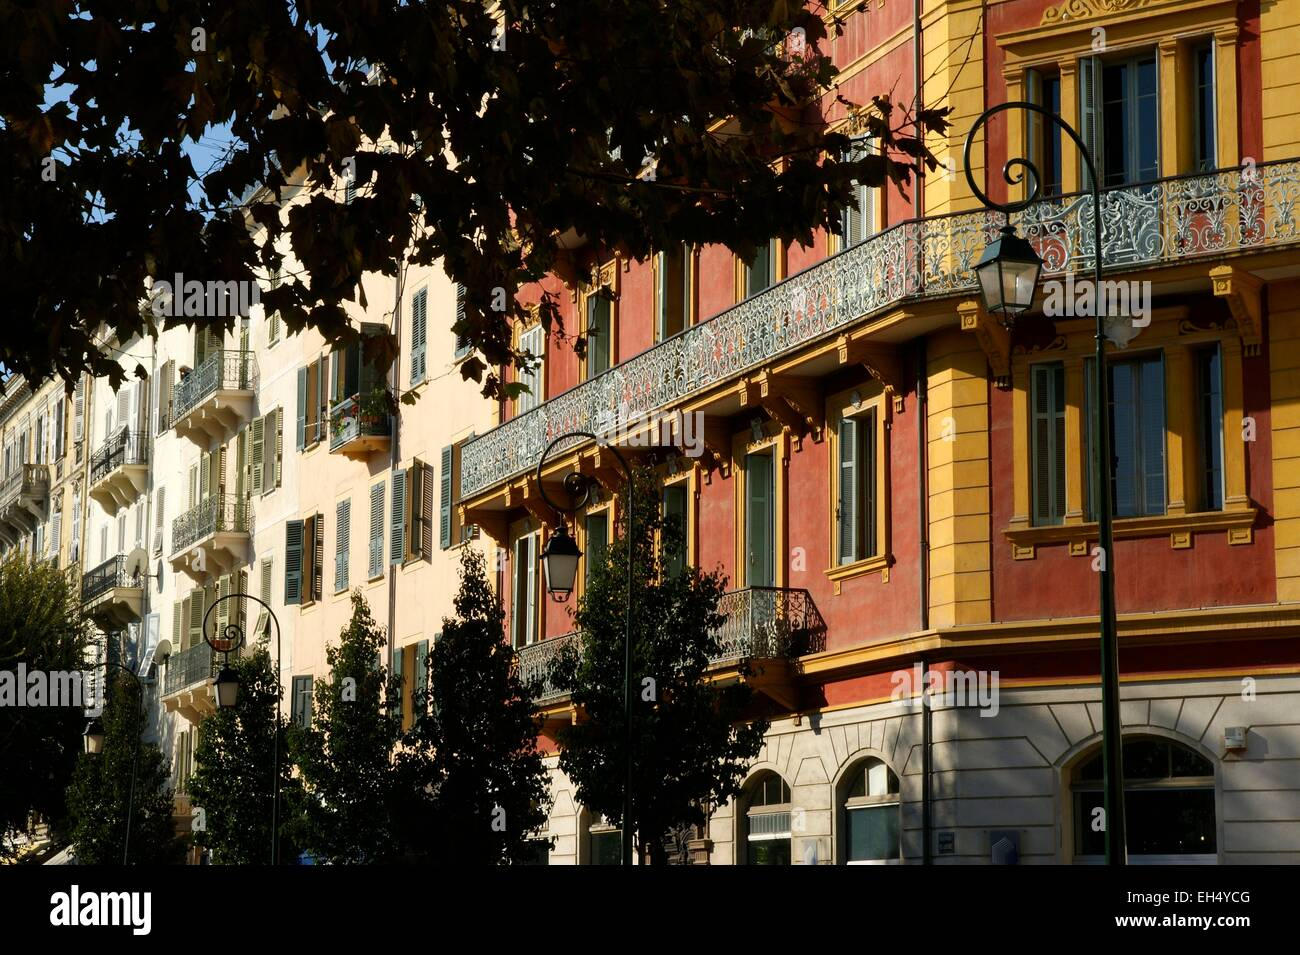 France, Corse du Sud, Ajaccio, the main avenues of the capital of South Corsica, are lined with facades rich and - Stock Image